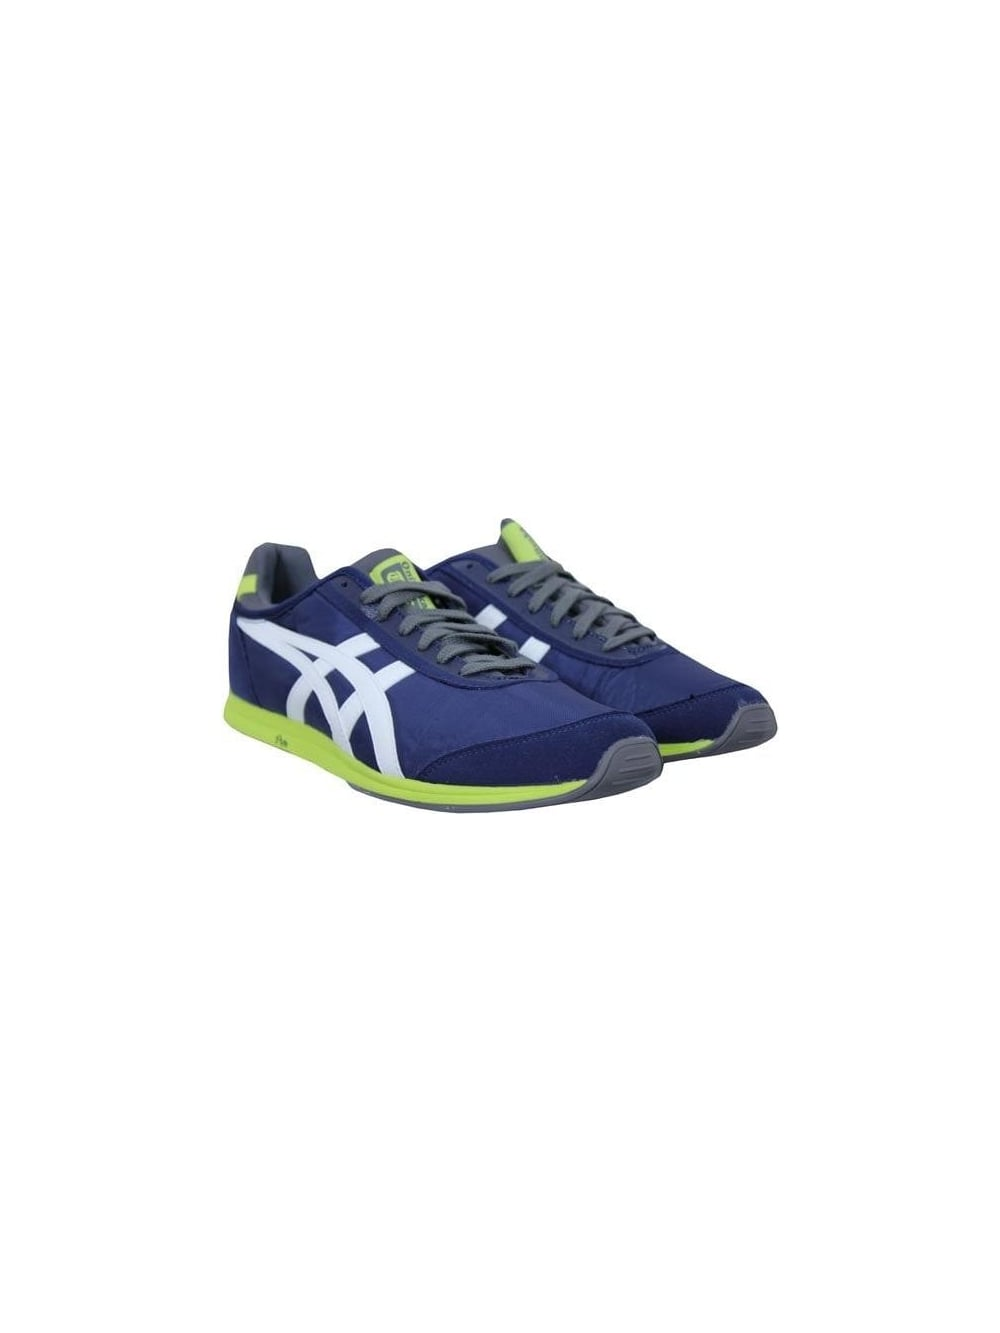 lowest price 1a47e b814c Asics Golden Spark Trainers - Navy/White